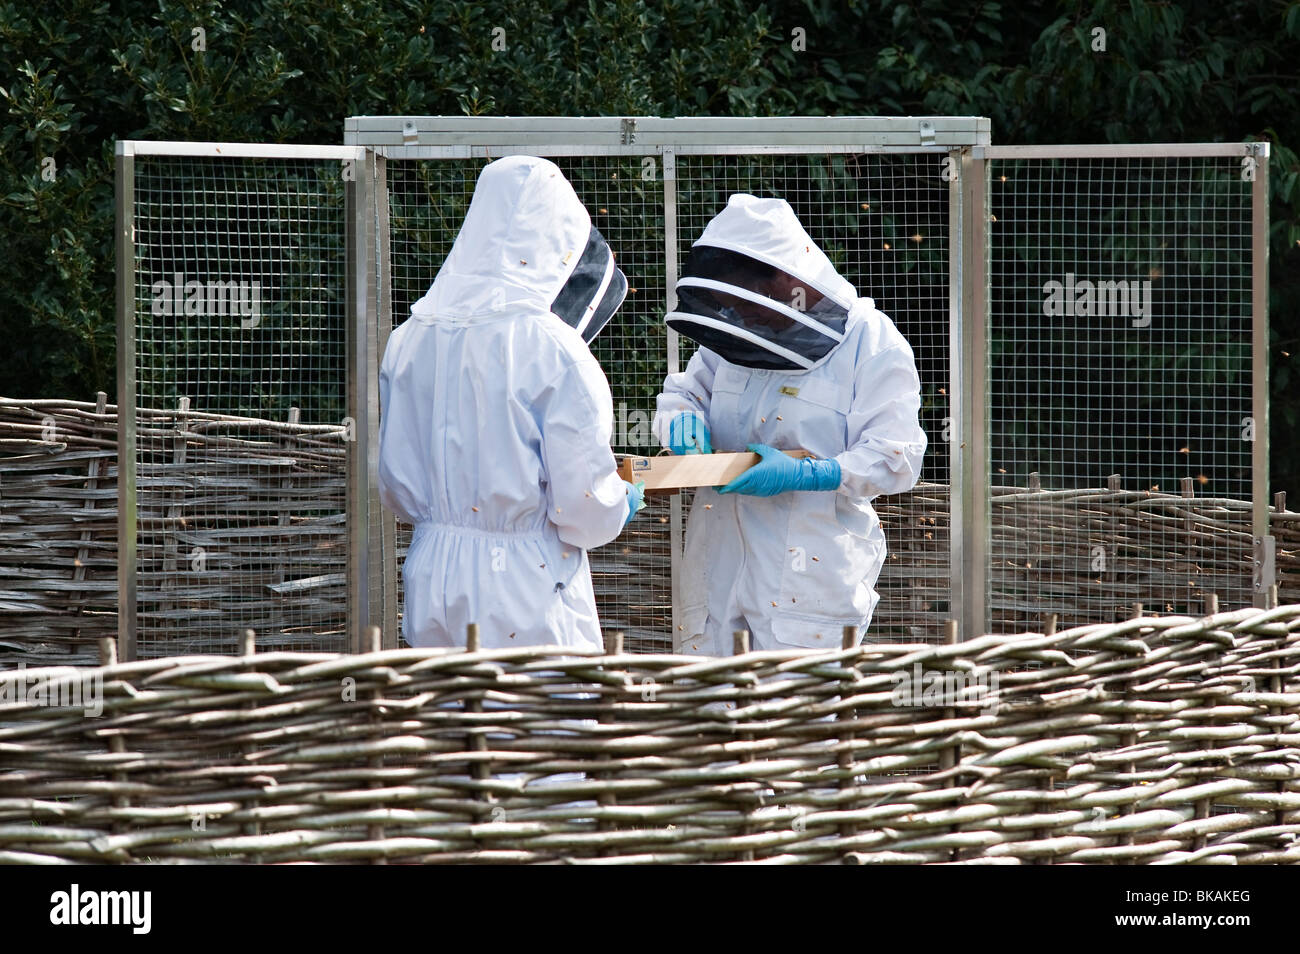 Beekeepers inspecting their hives at Kew Gardens, London, UK - Stock Image